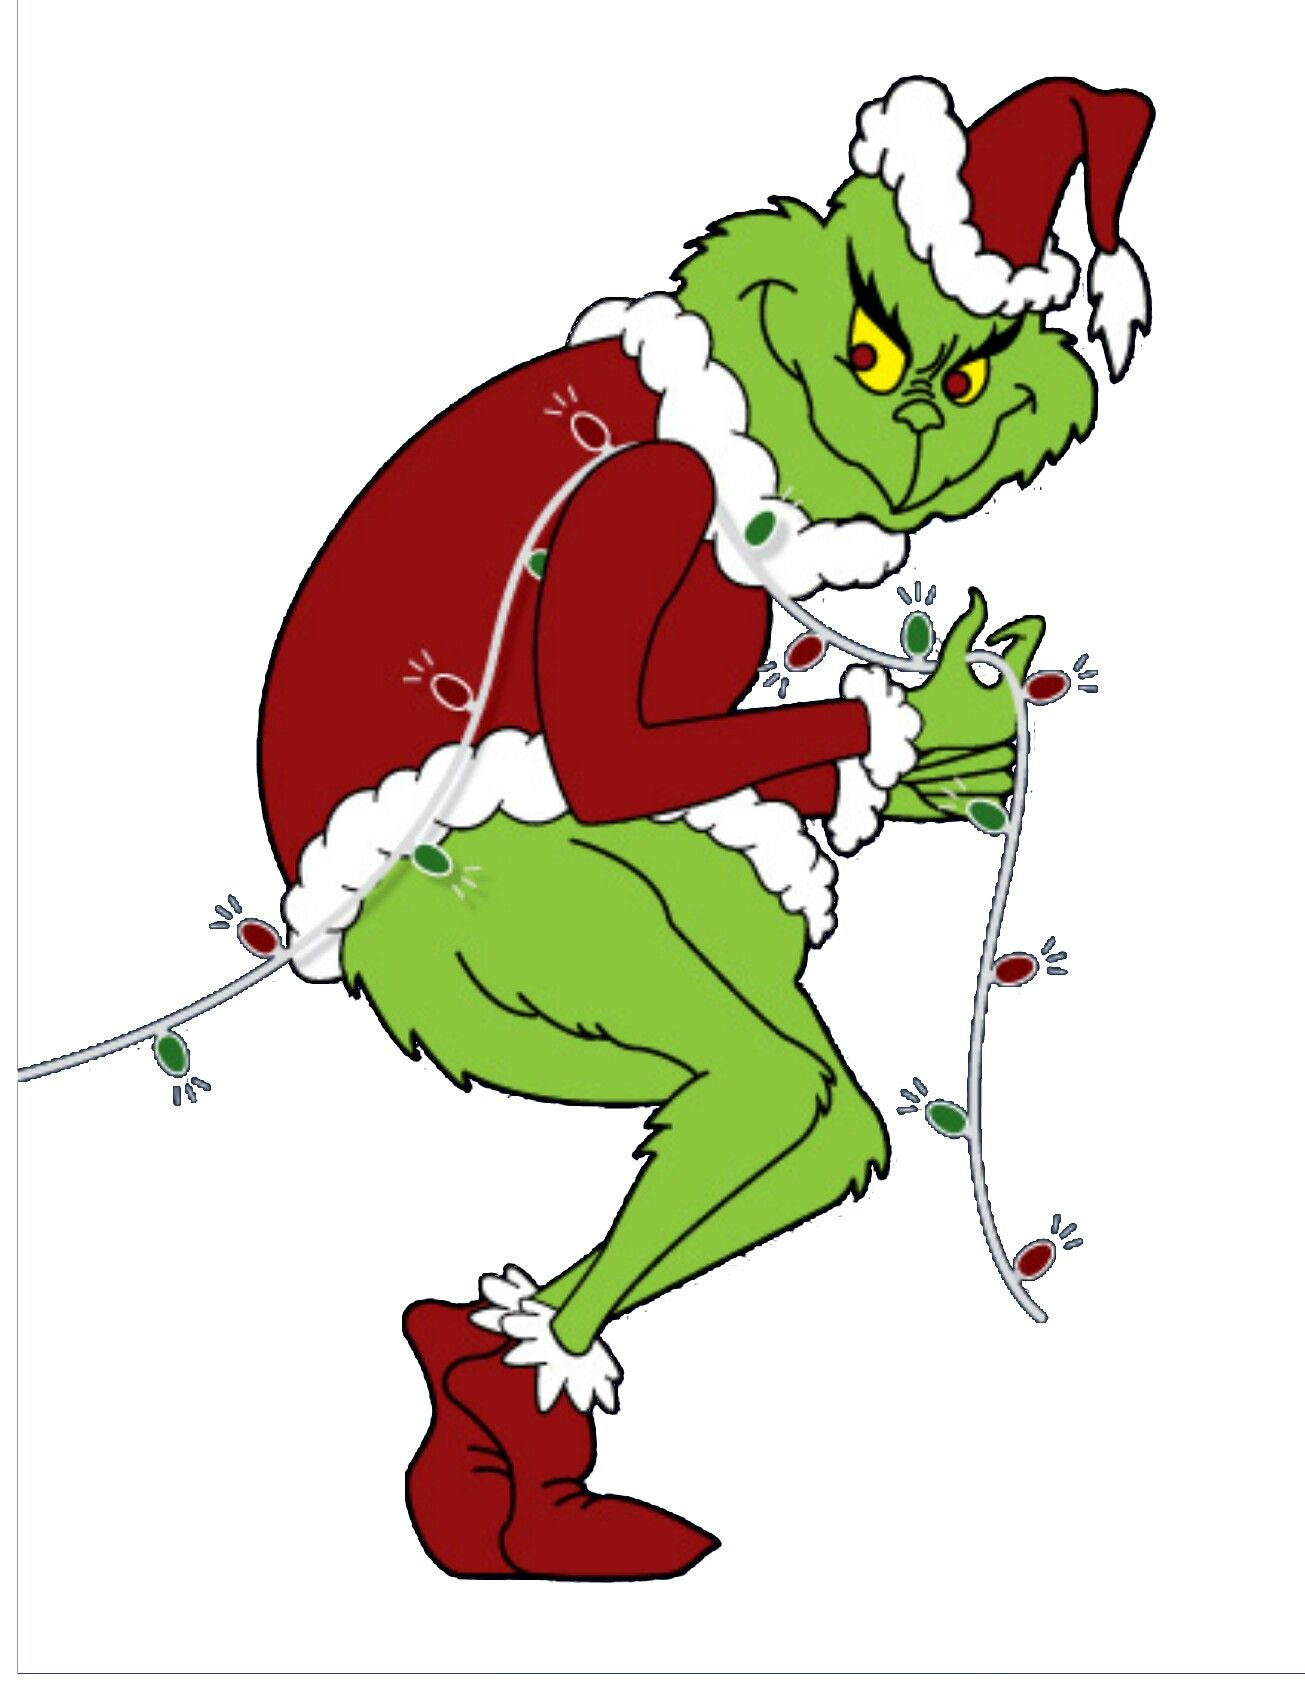 Grinch color template | Grinch | Pinterest | Grinch ...